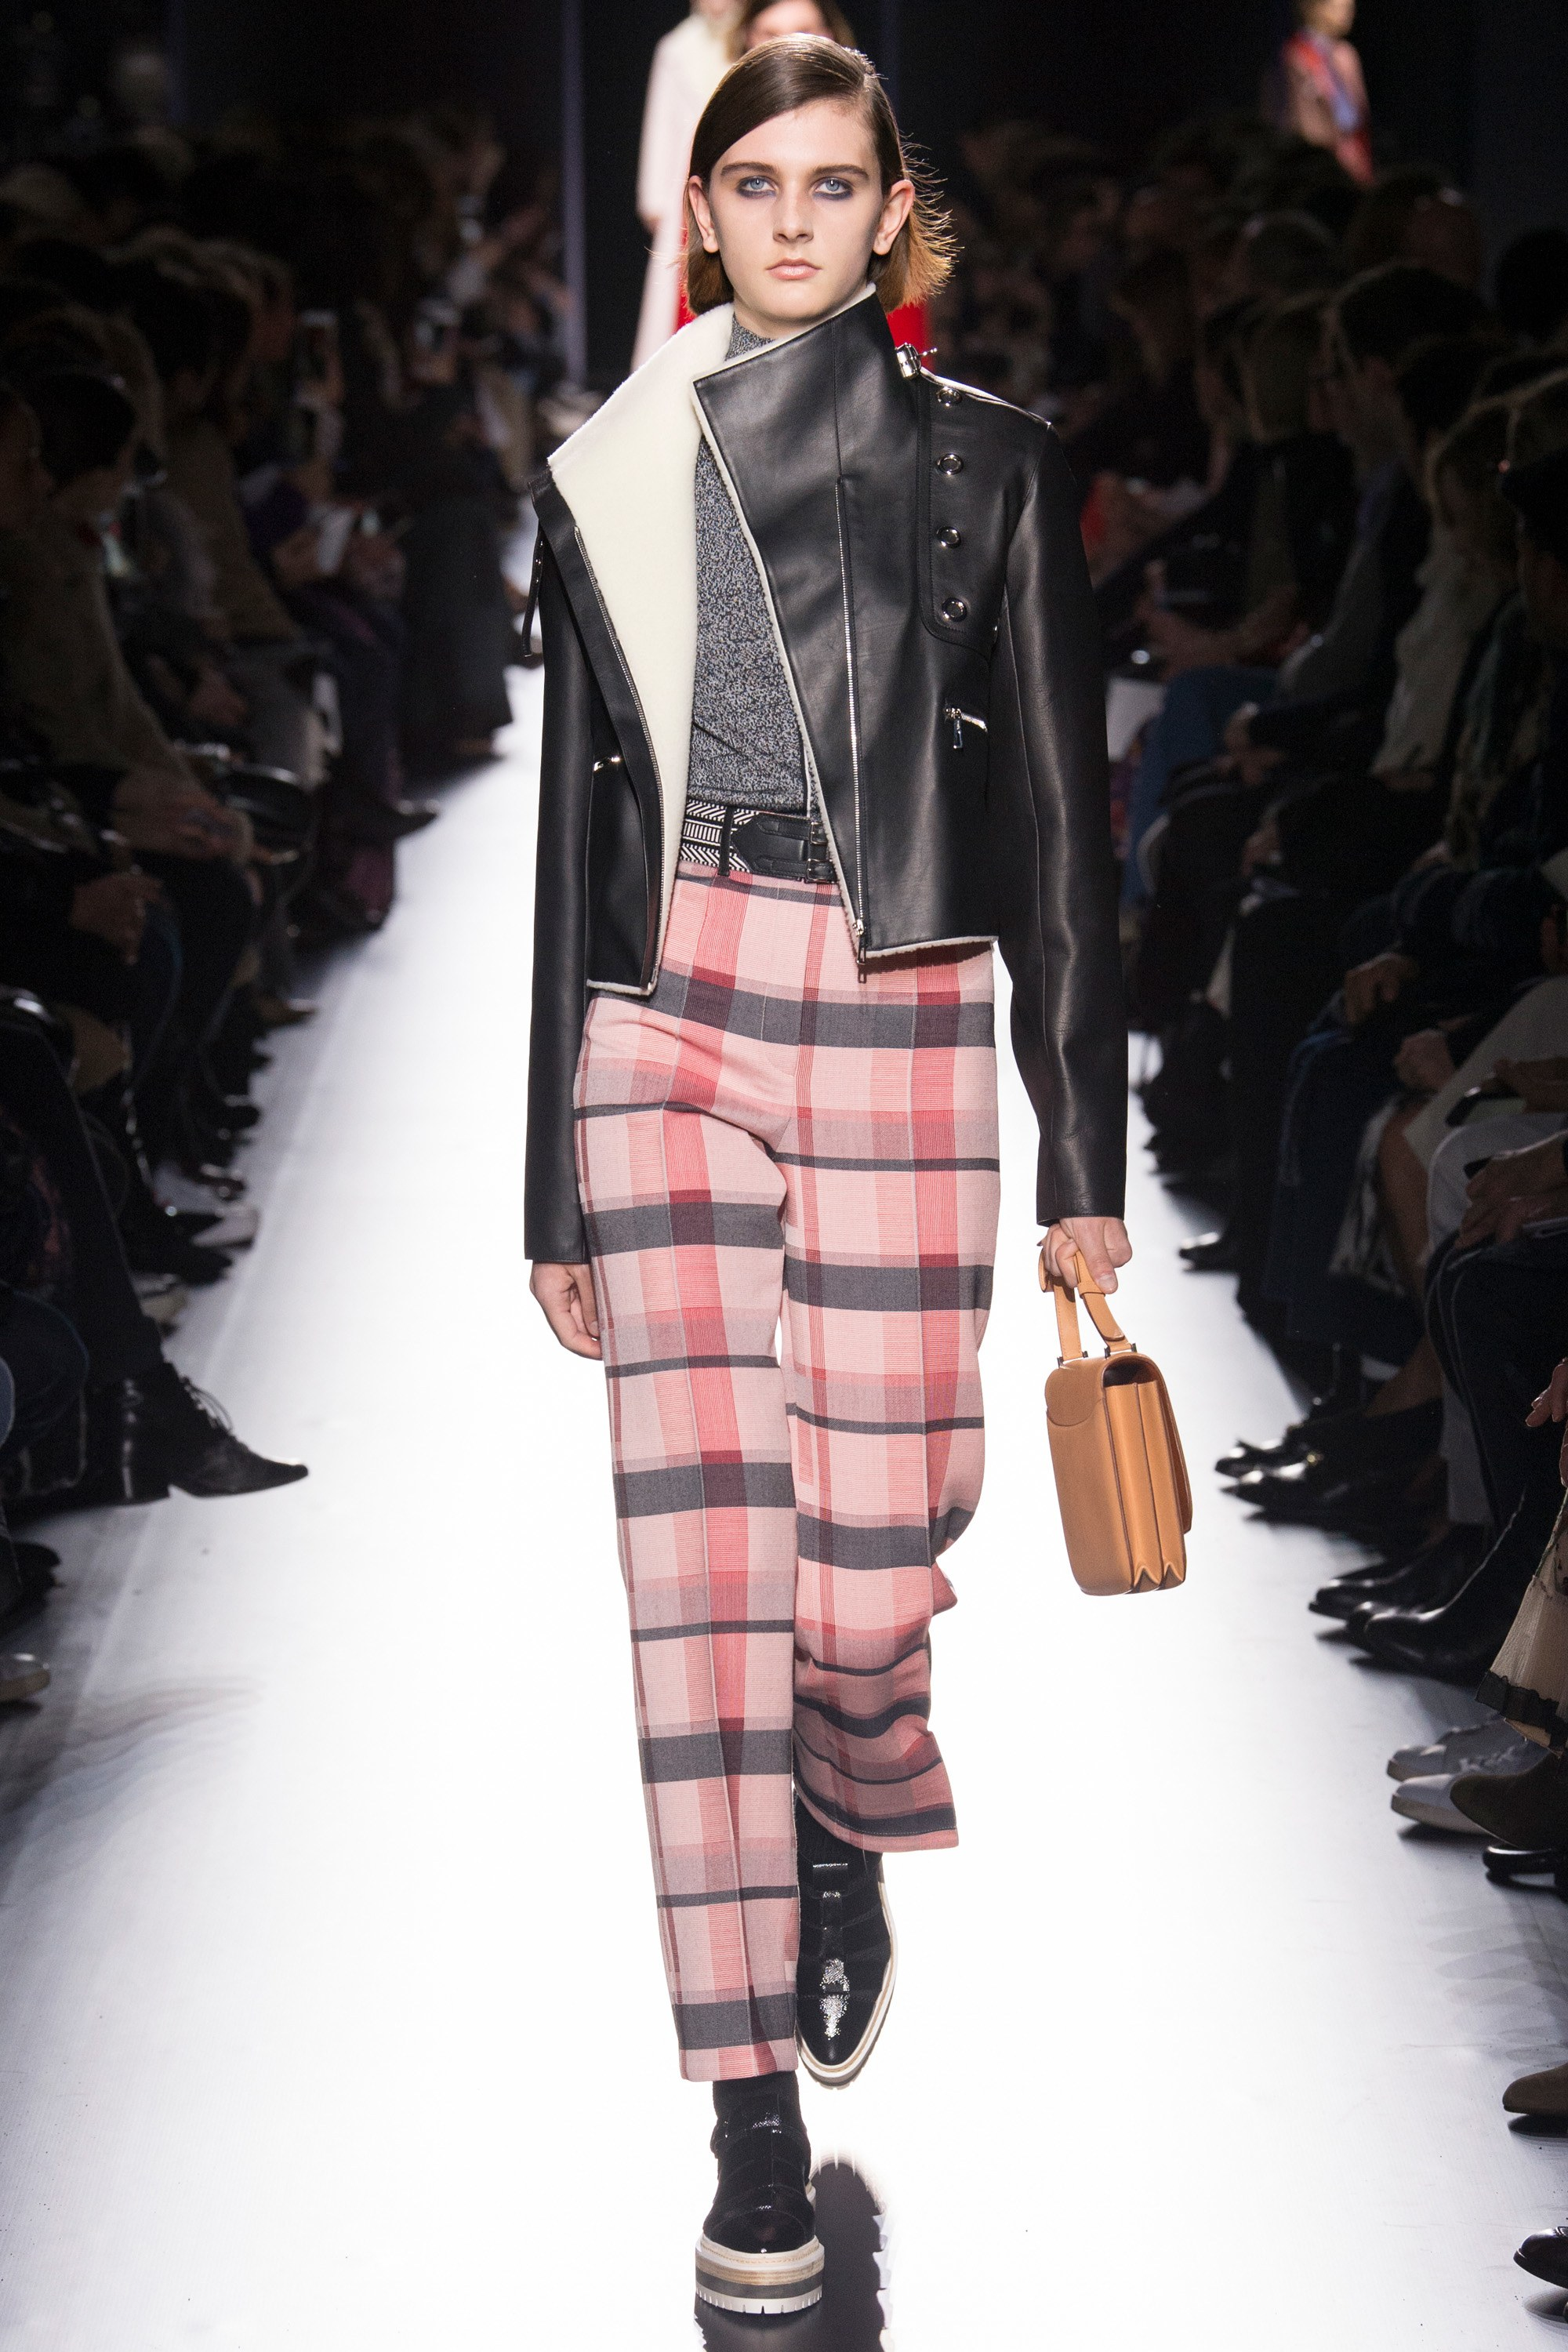 Hermes Fall Winter 2017 Runway Bag Collection Spotted Fashion